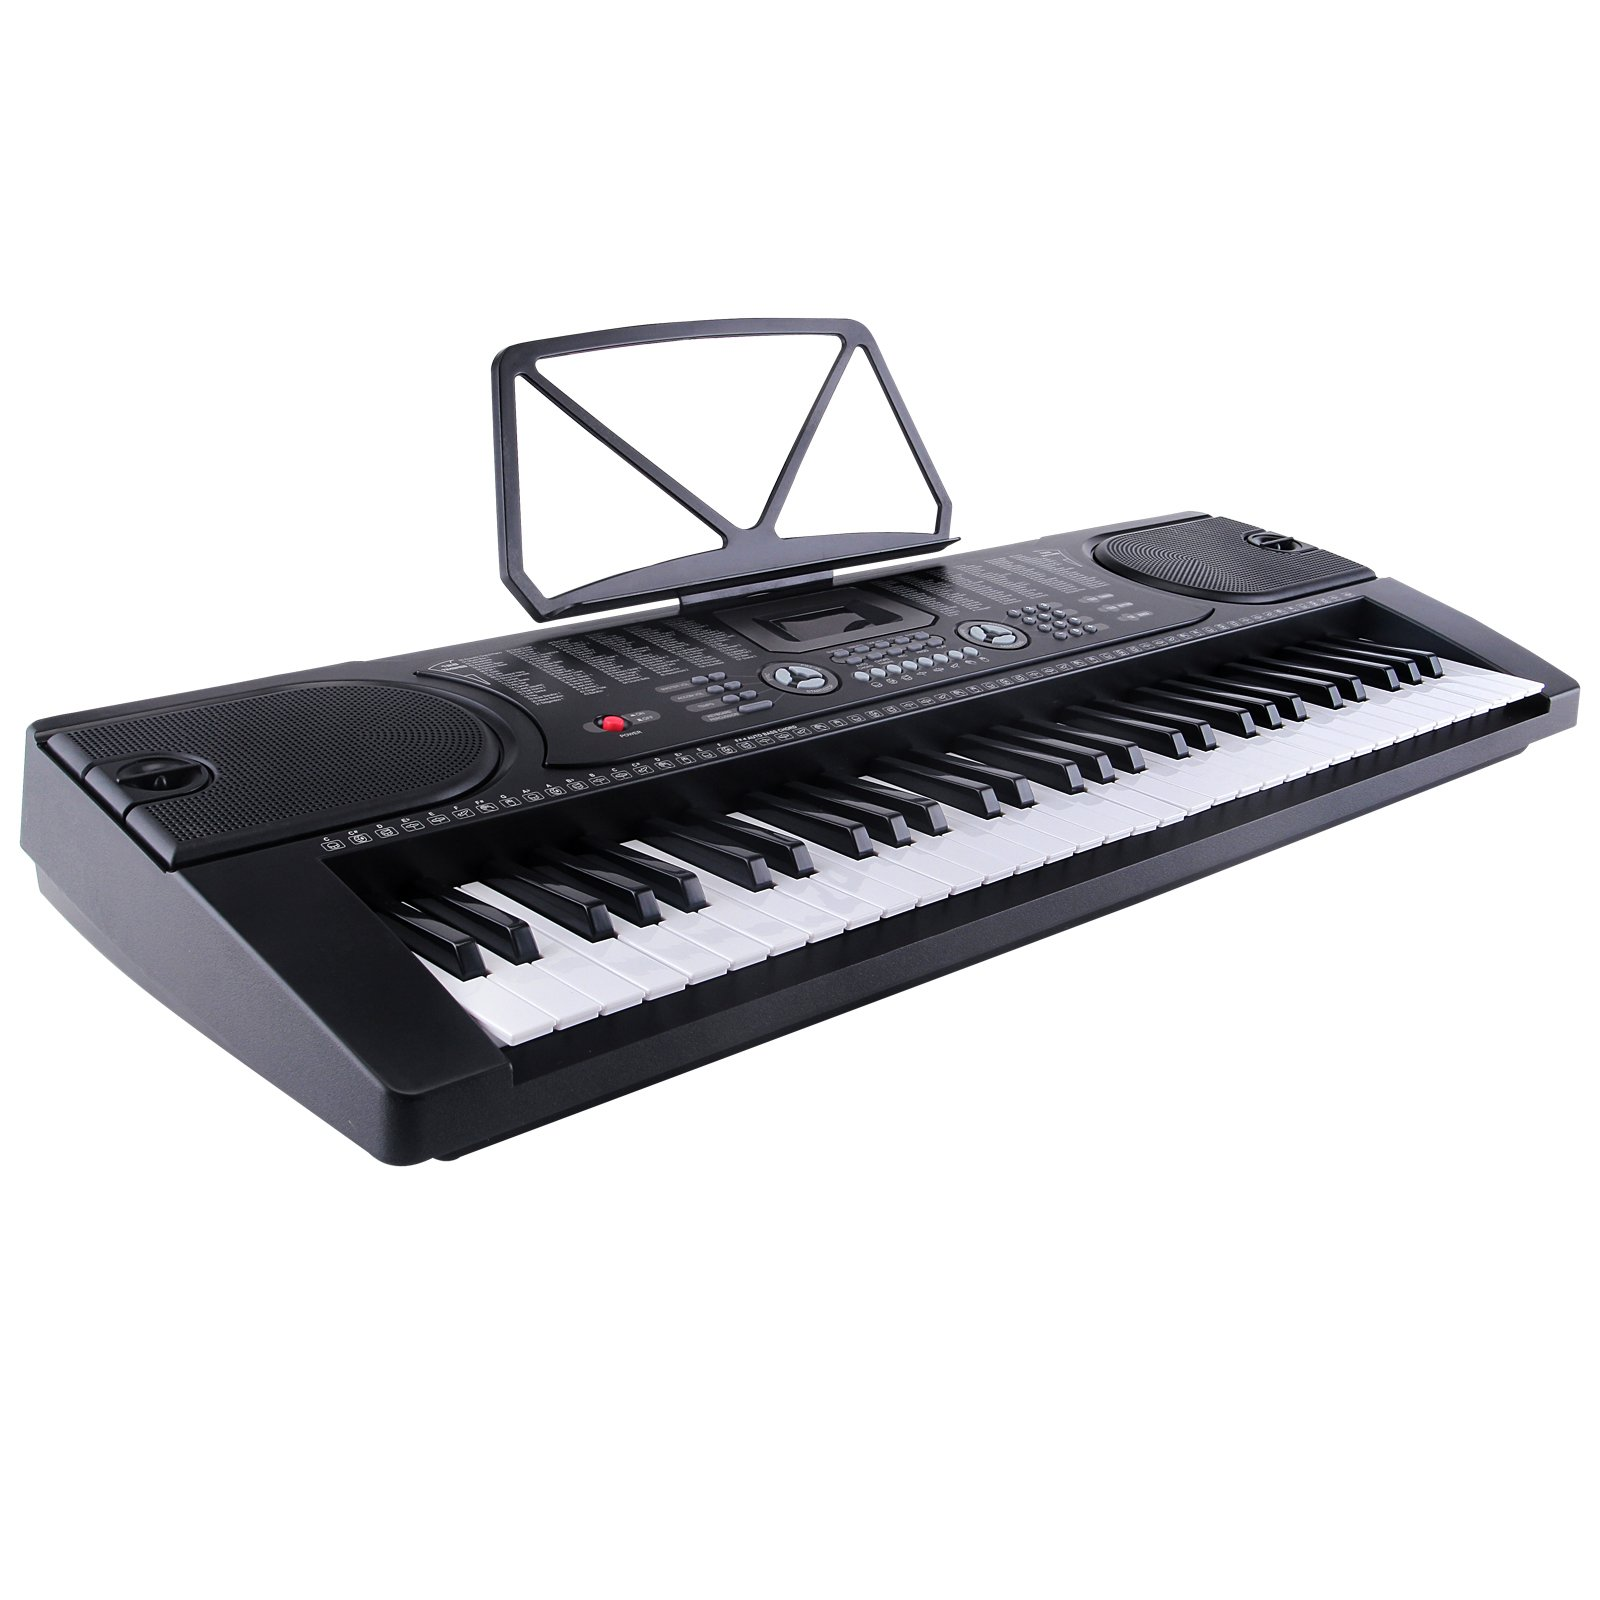 LAGRIMA Electric Piano Keyboard 61 key Keyboard Music Piano Portable Electronic Digital paino with Microphone (Black)